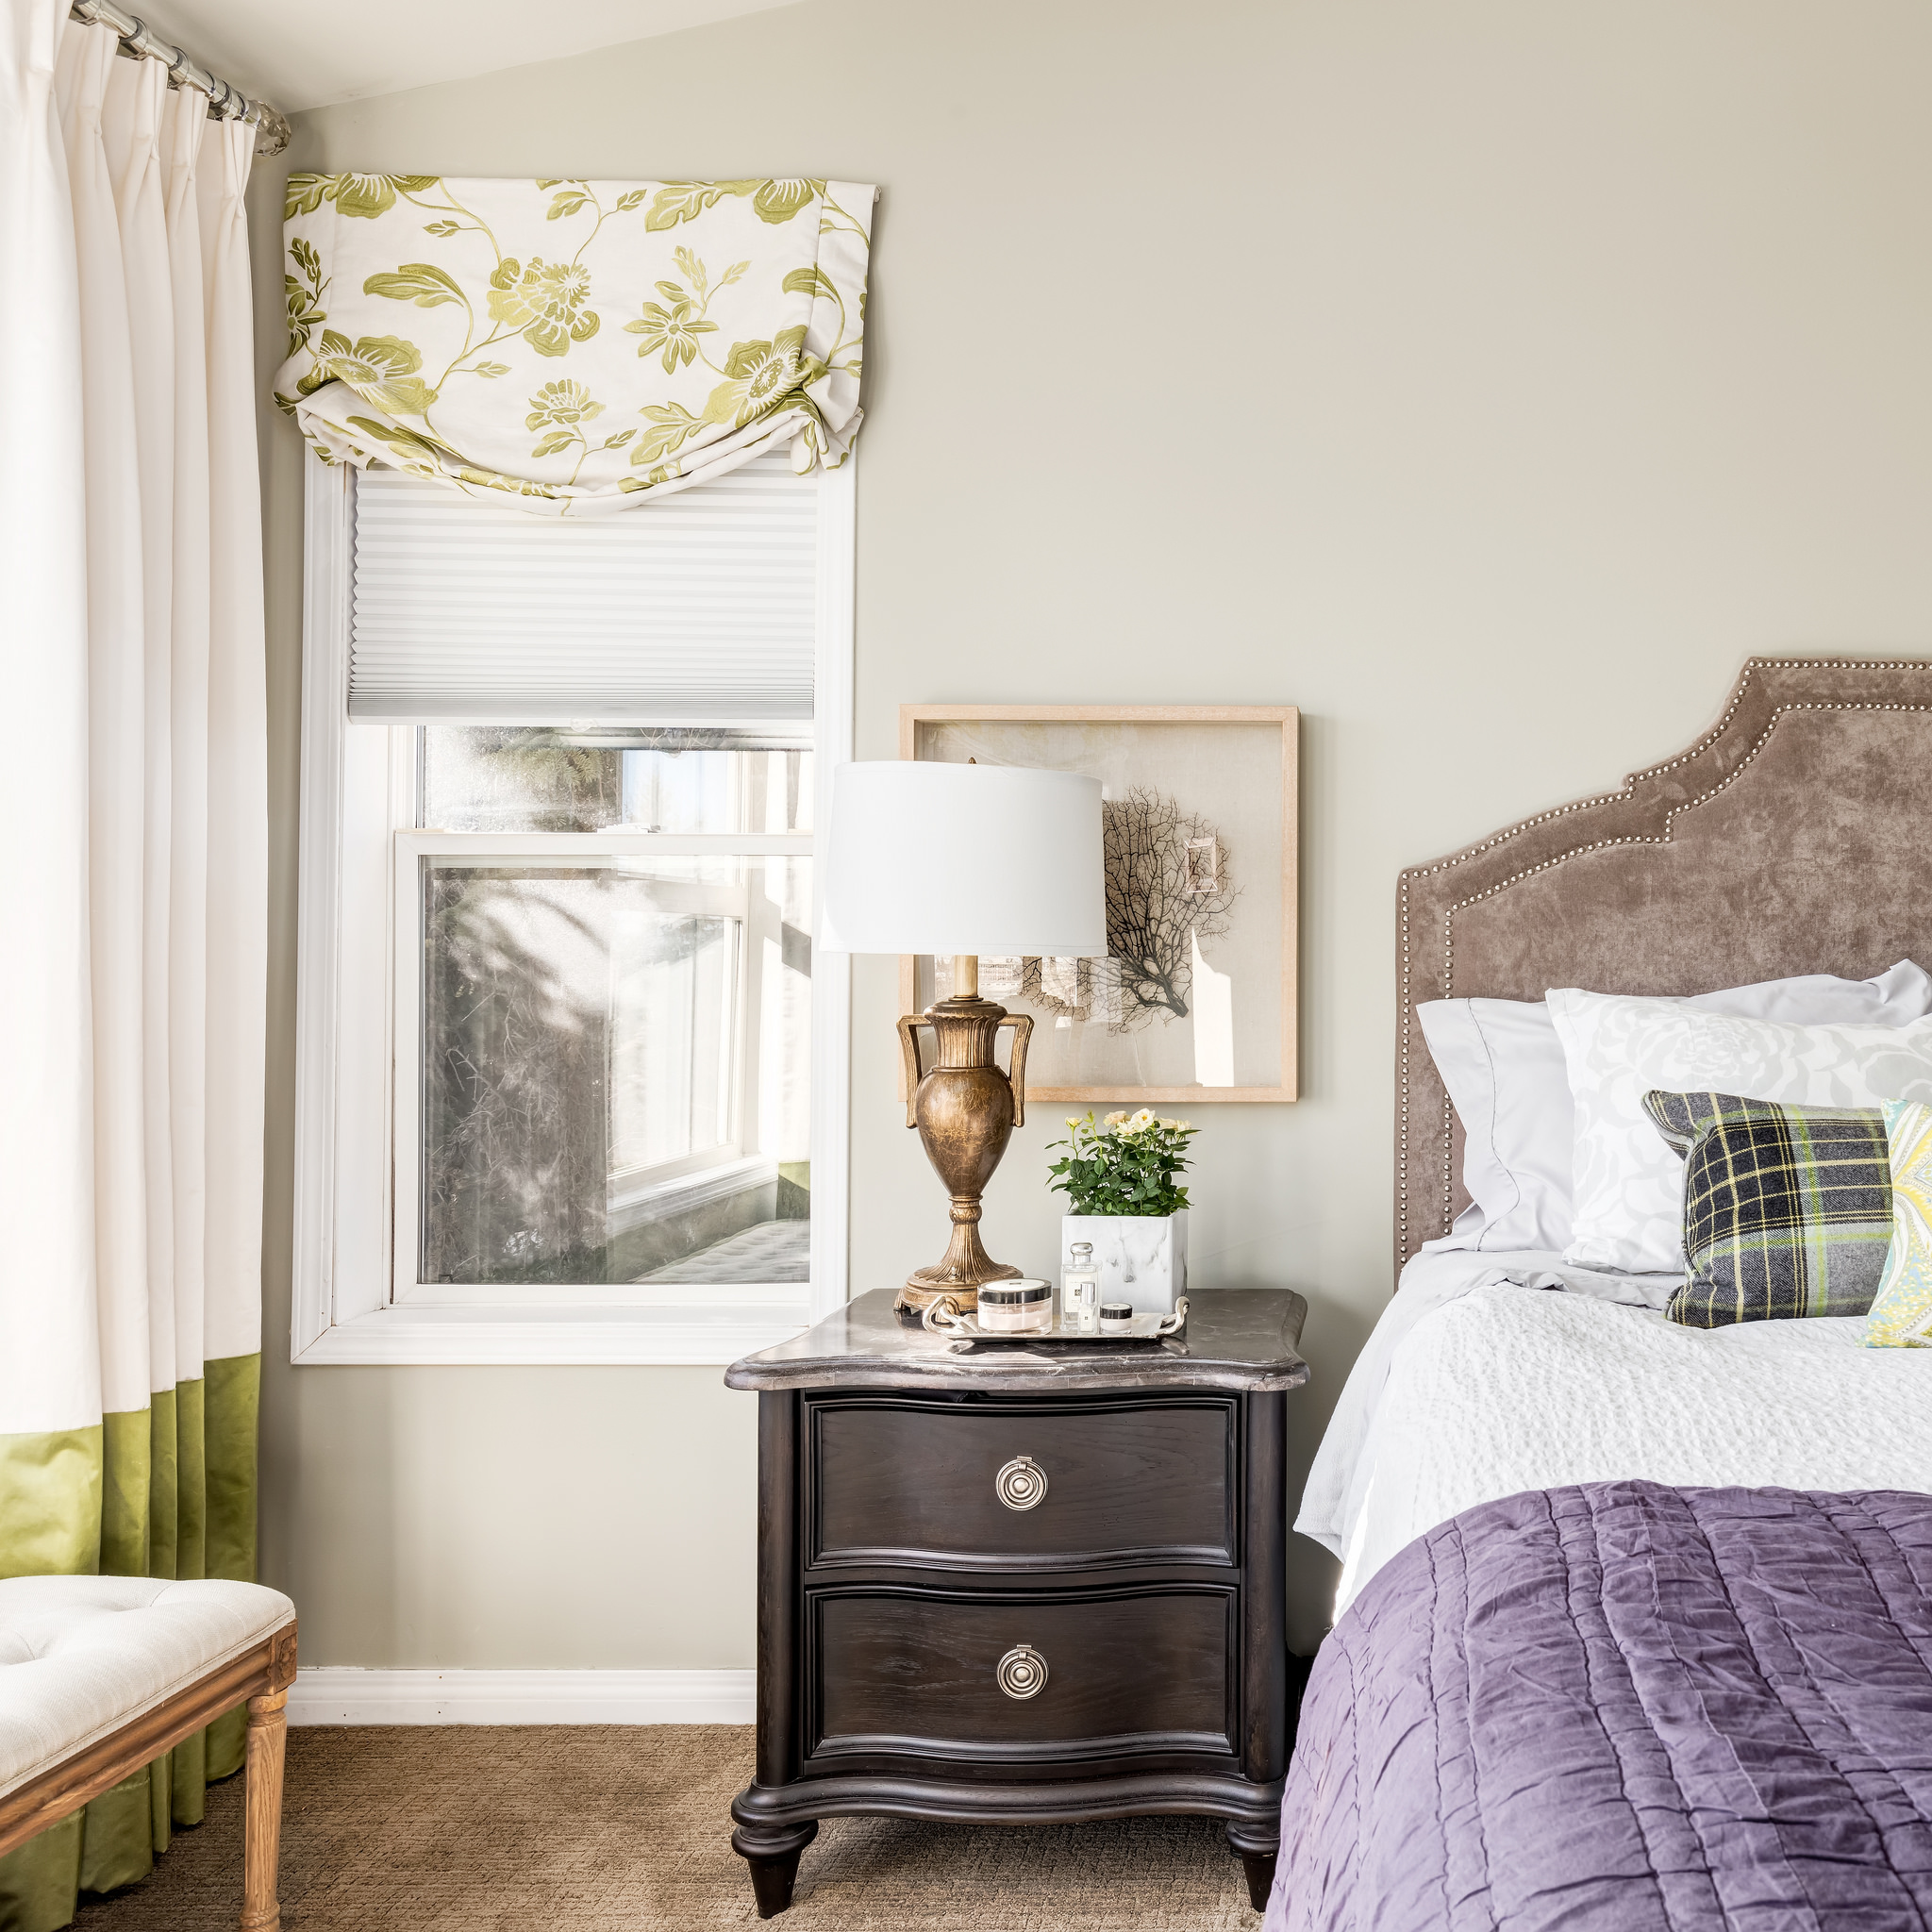 Custom plaid cushion sits on a bed with custom velvet headboard with nailhead detailing. The window coverings are custom and combine floral and plain fabrics.